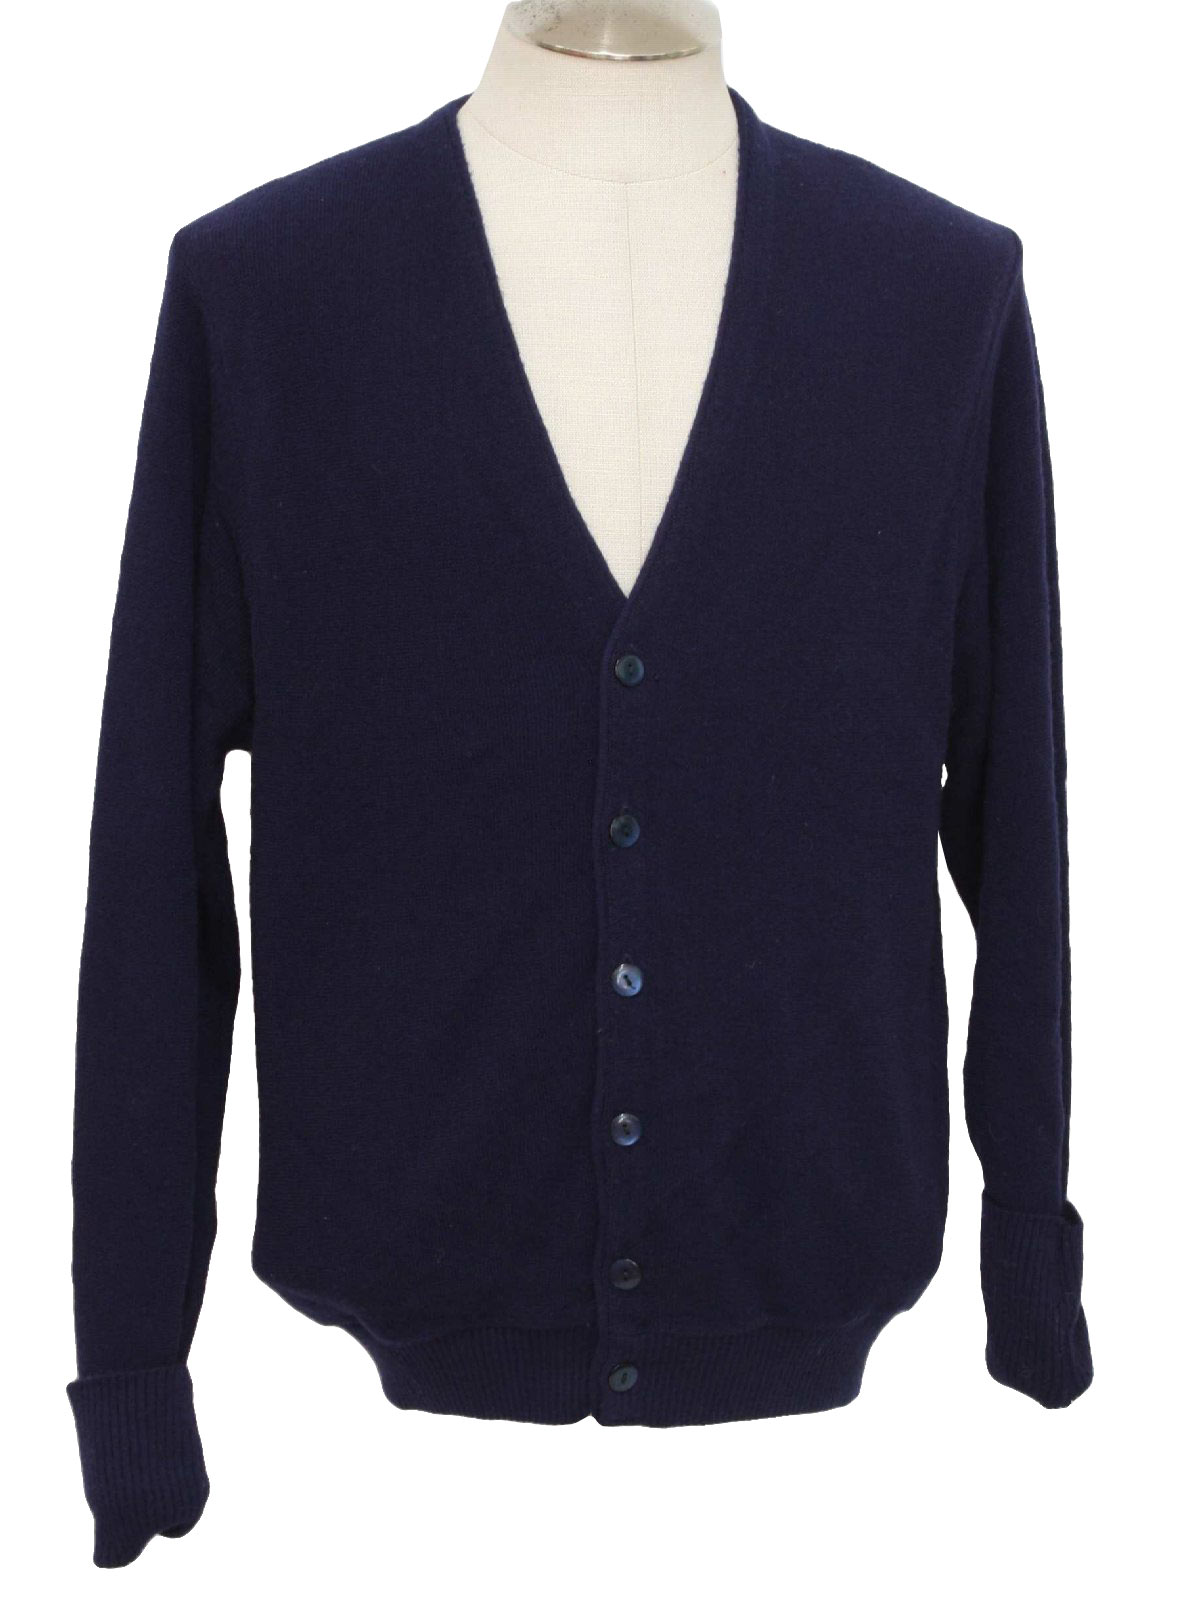 Men's Blue Cardigan In Navy See more Lindbergh Cardigans. Subscribe to the latest from Lindbergh. Men's Sweaters and knitwear. Men's Cardigans. Men's Lindbergh Clothing. Men's Lindbergh Sweaters and knitwear. Men's Lindbergh Cardigans. More product details. Cardigan by lindbergh. Perfect for when the wind gehedoruqigimate.ml: $